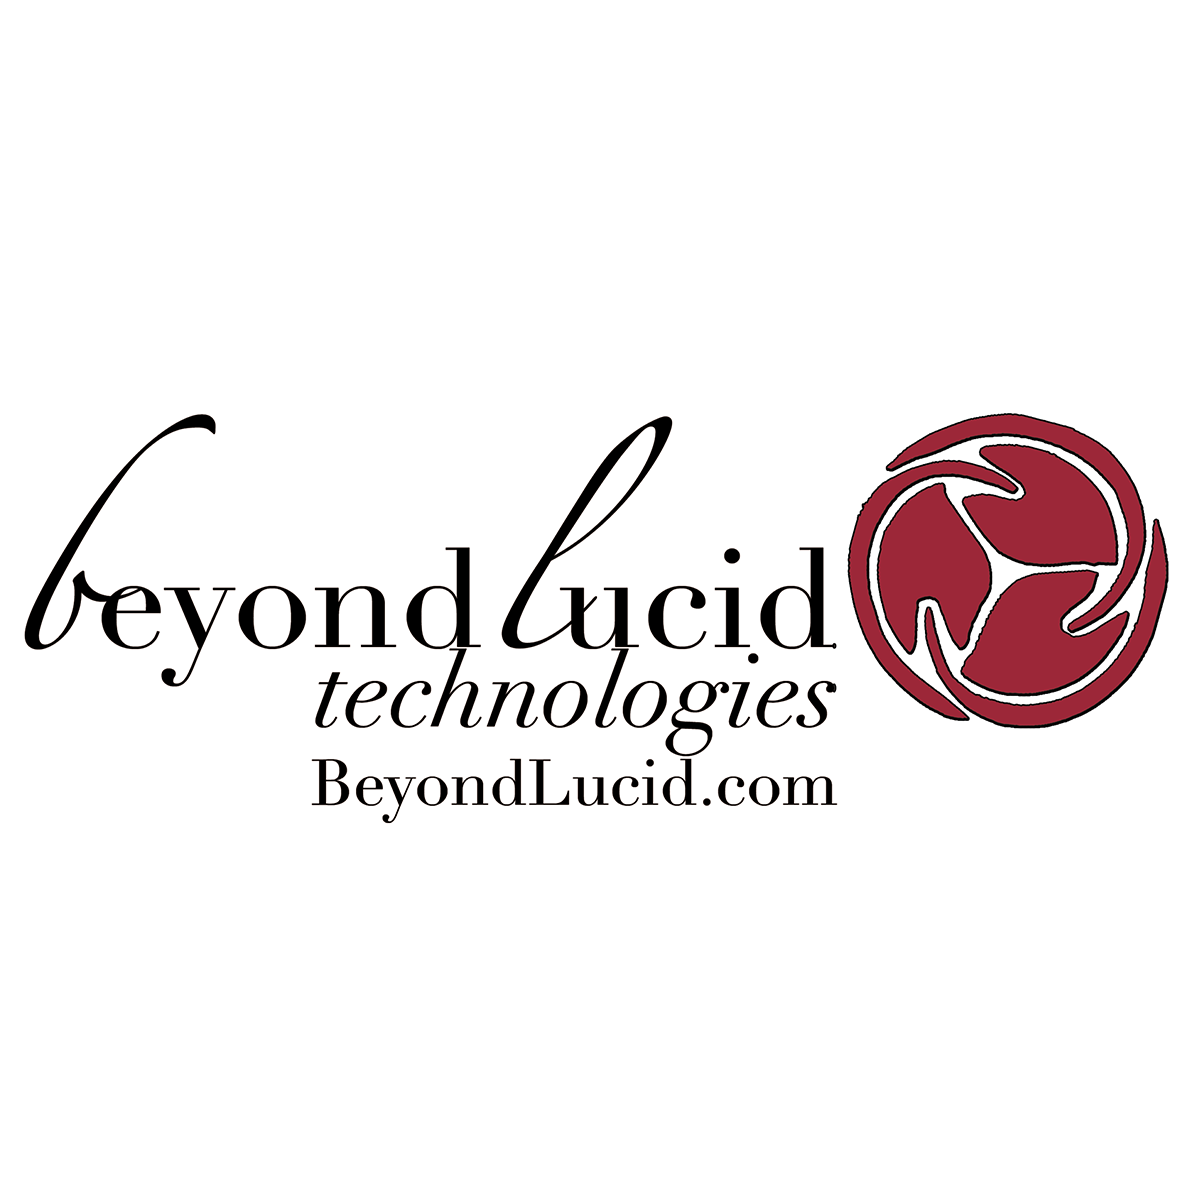 Beyond Lucid Technologies